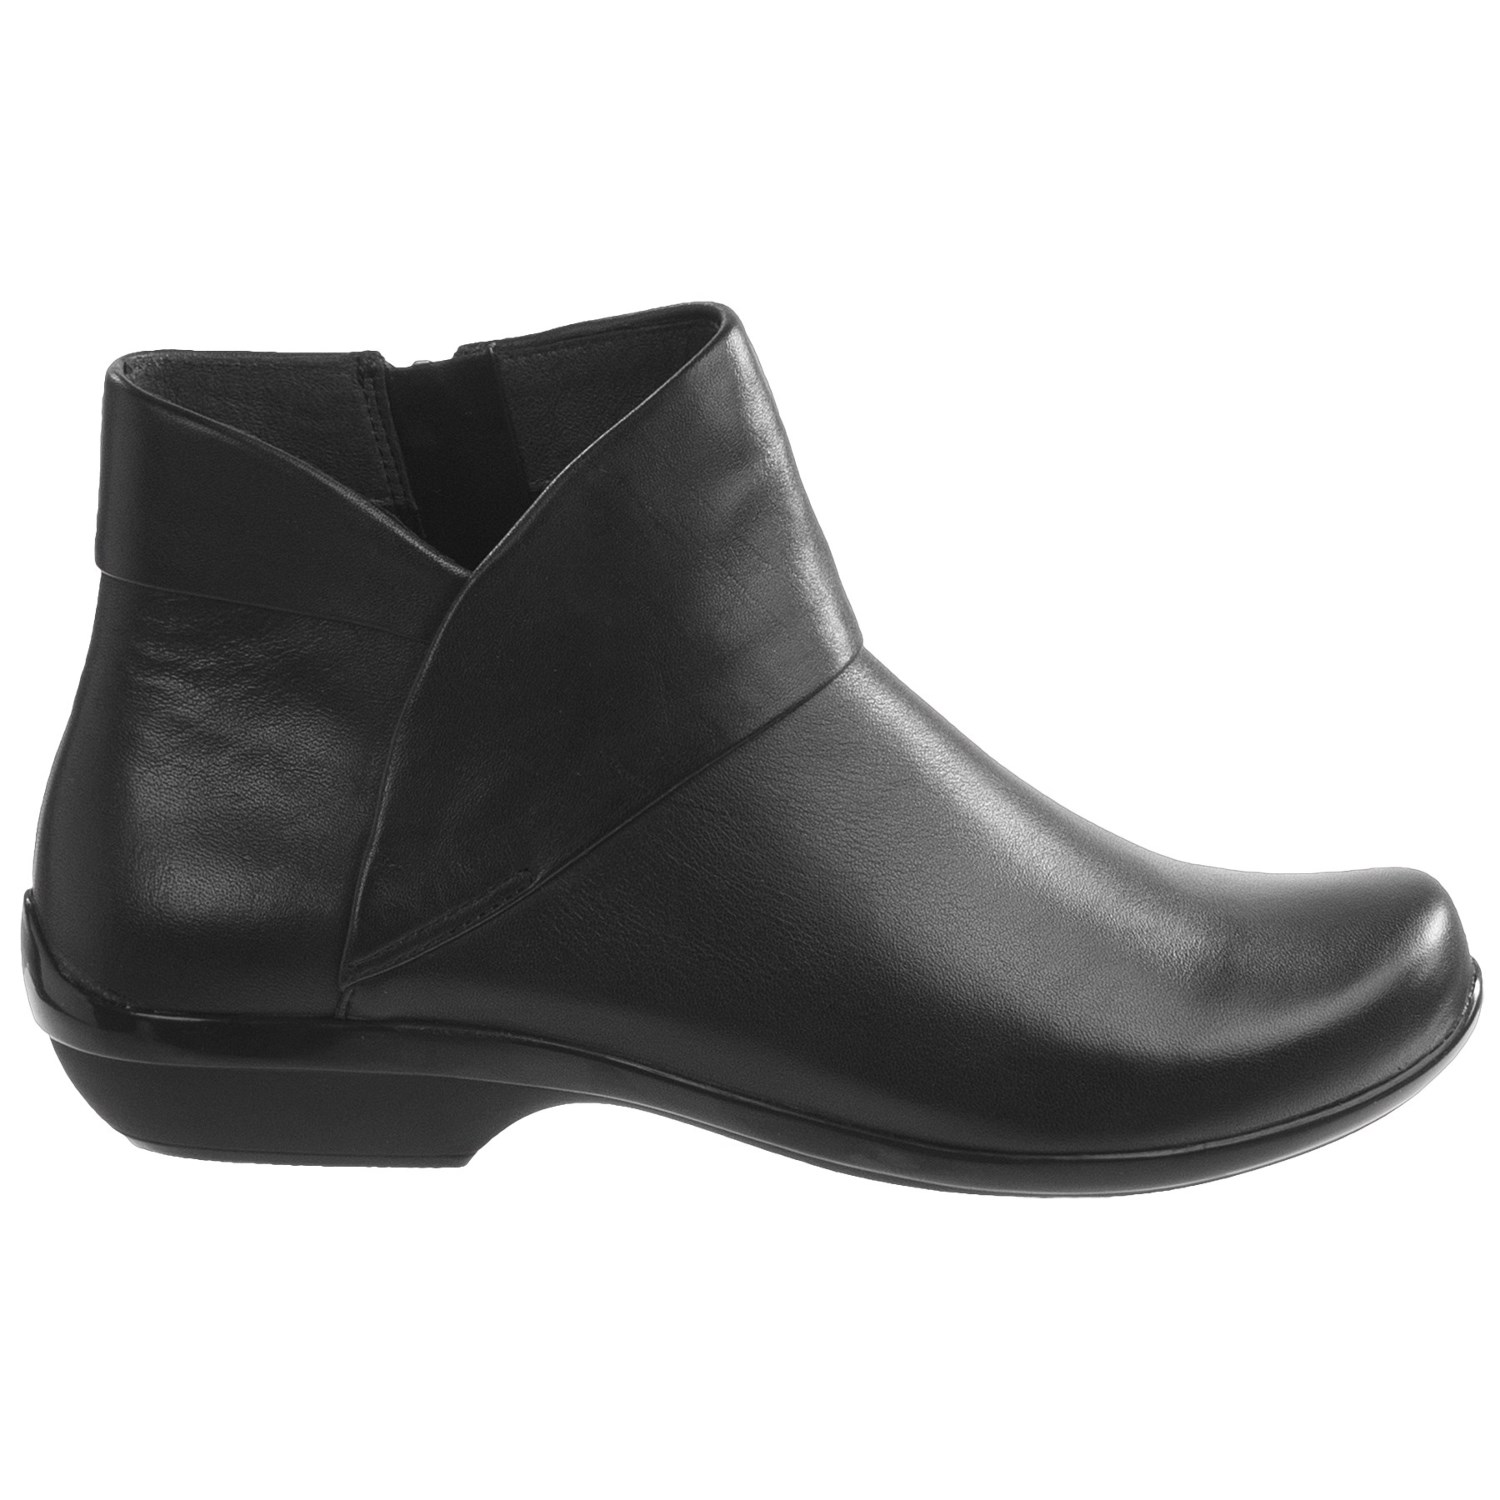 Dansko Ona Ankle Boots For Women 8923k Save 53